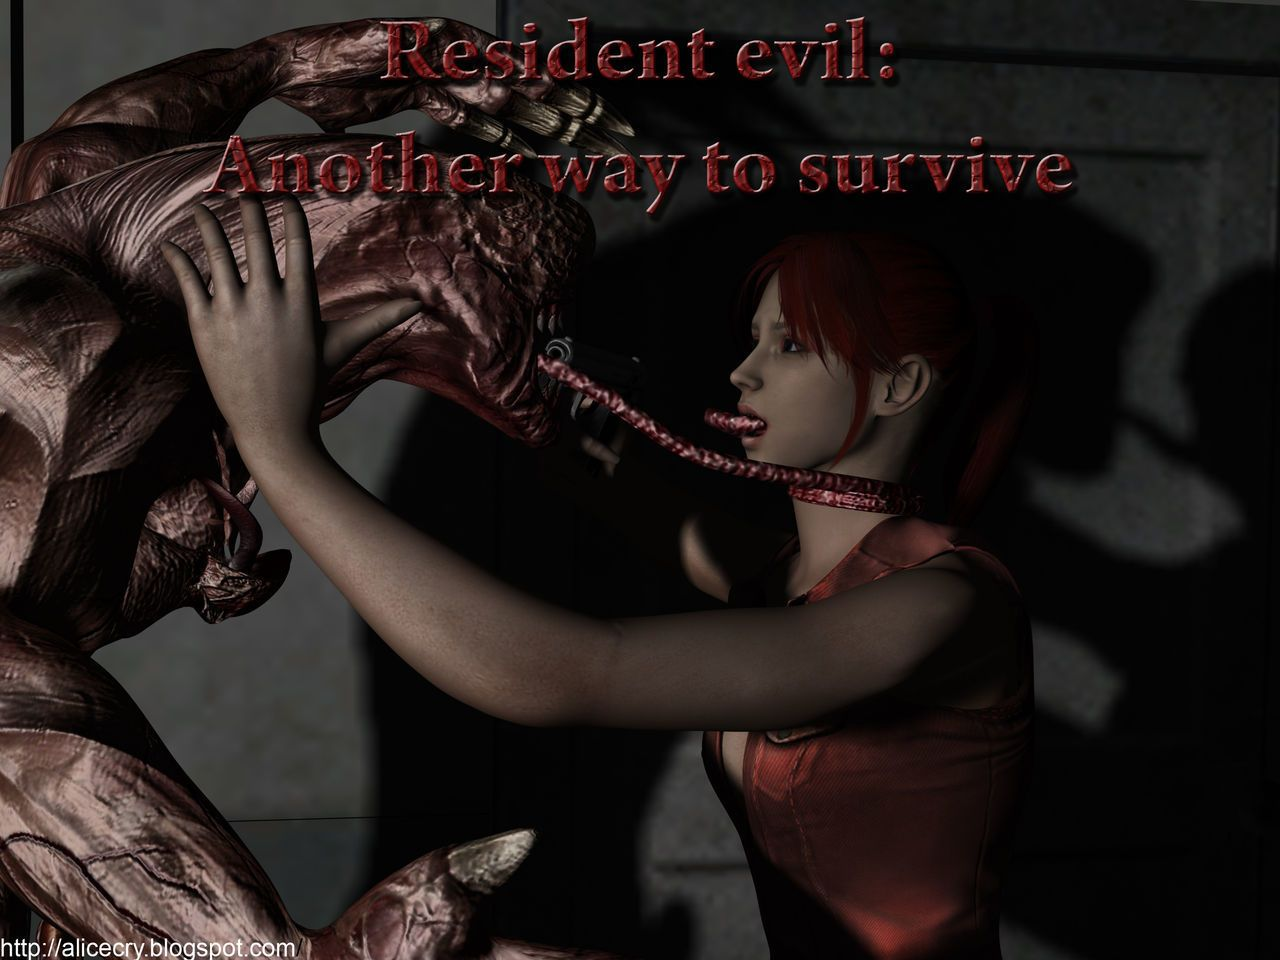 Resident evil: Another way to survive (comix)